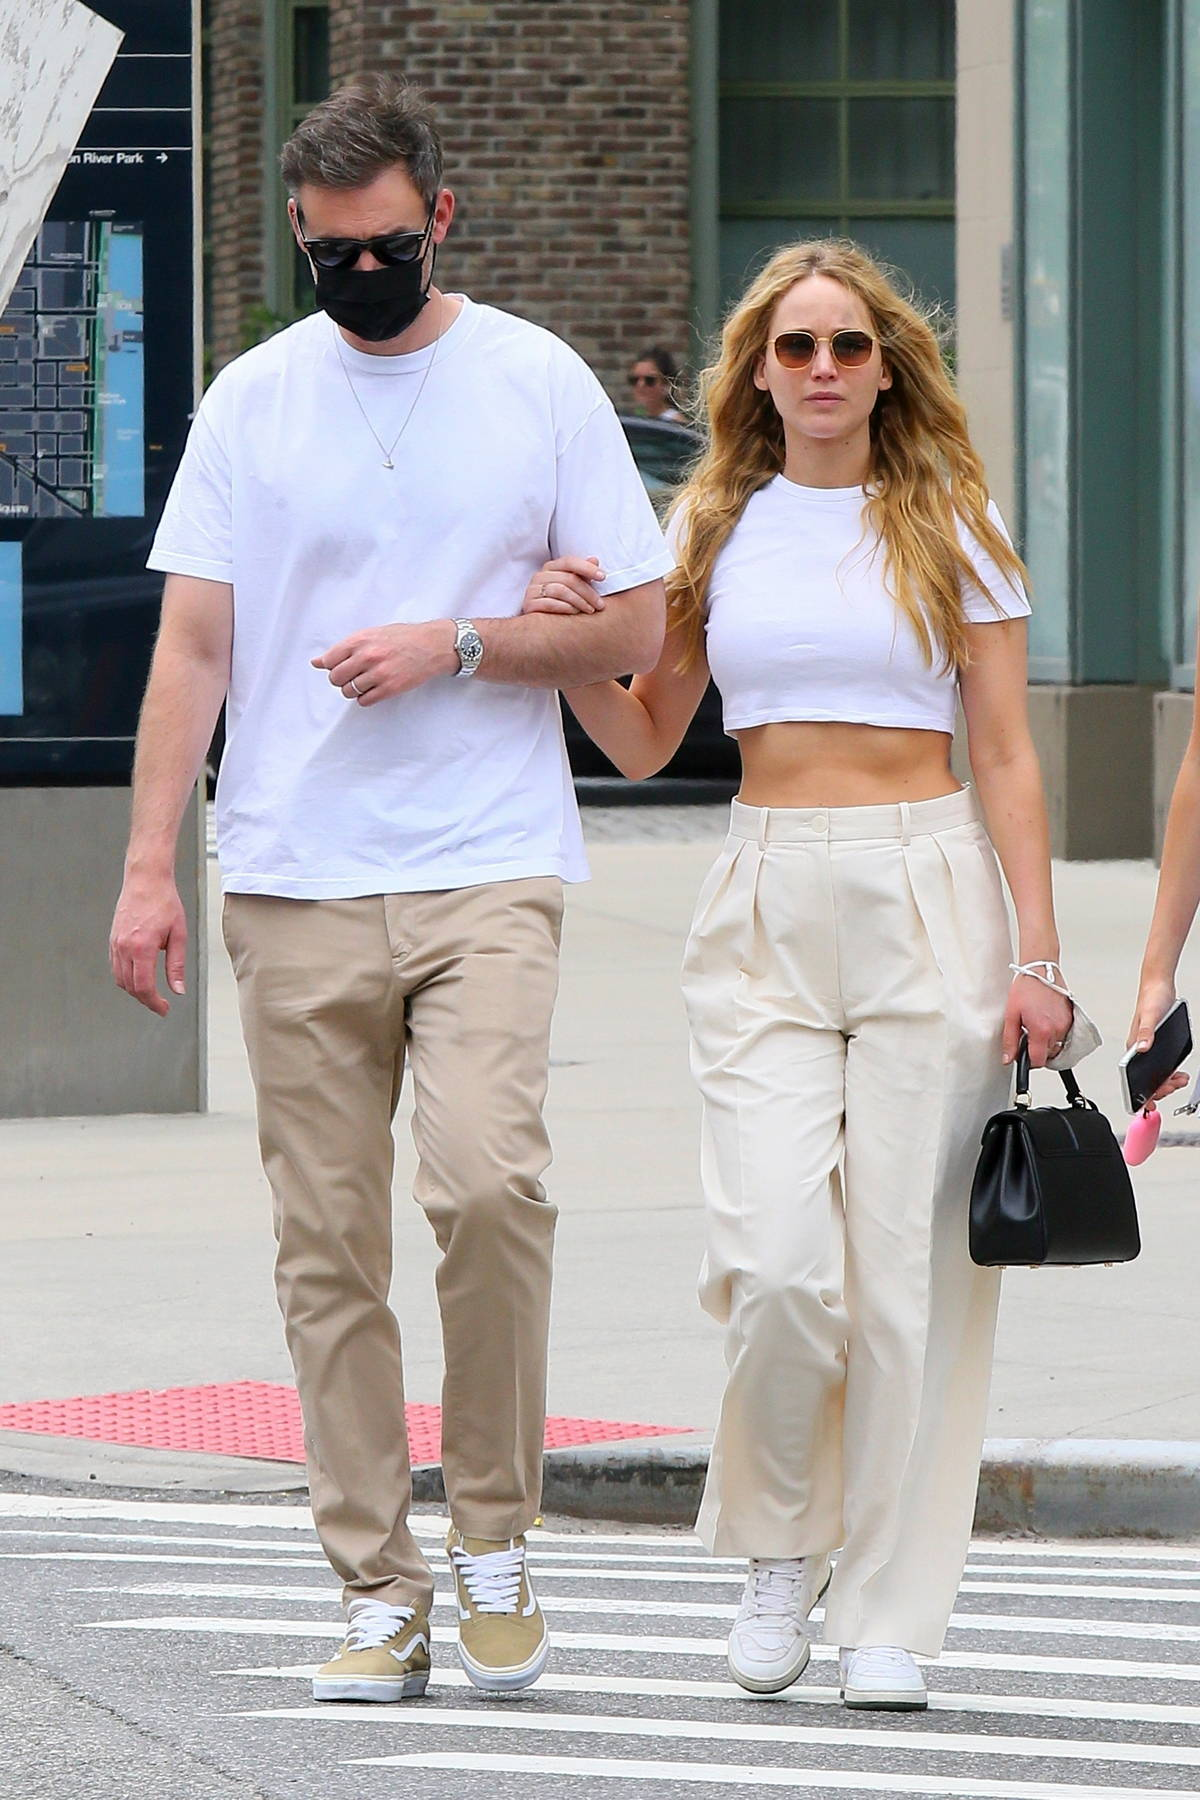 Jennifer Lawrence and Cooke Maroney walk arm in arm donning matching outfit during a lunch date in New York City